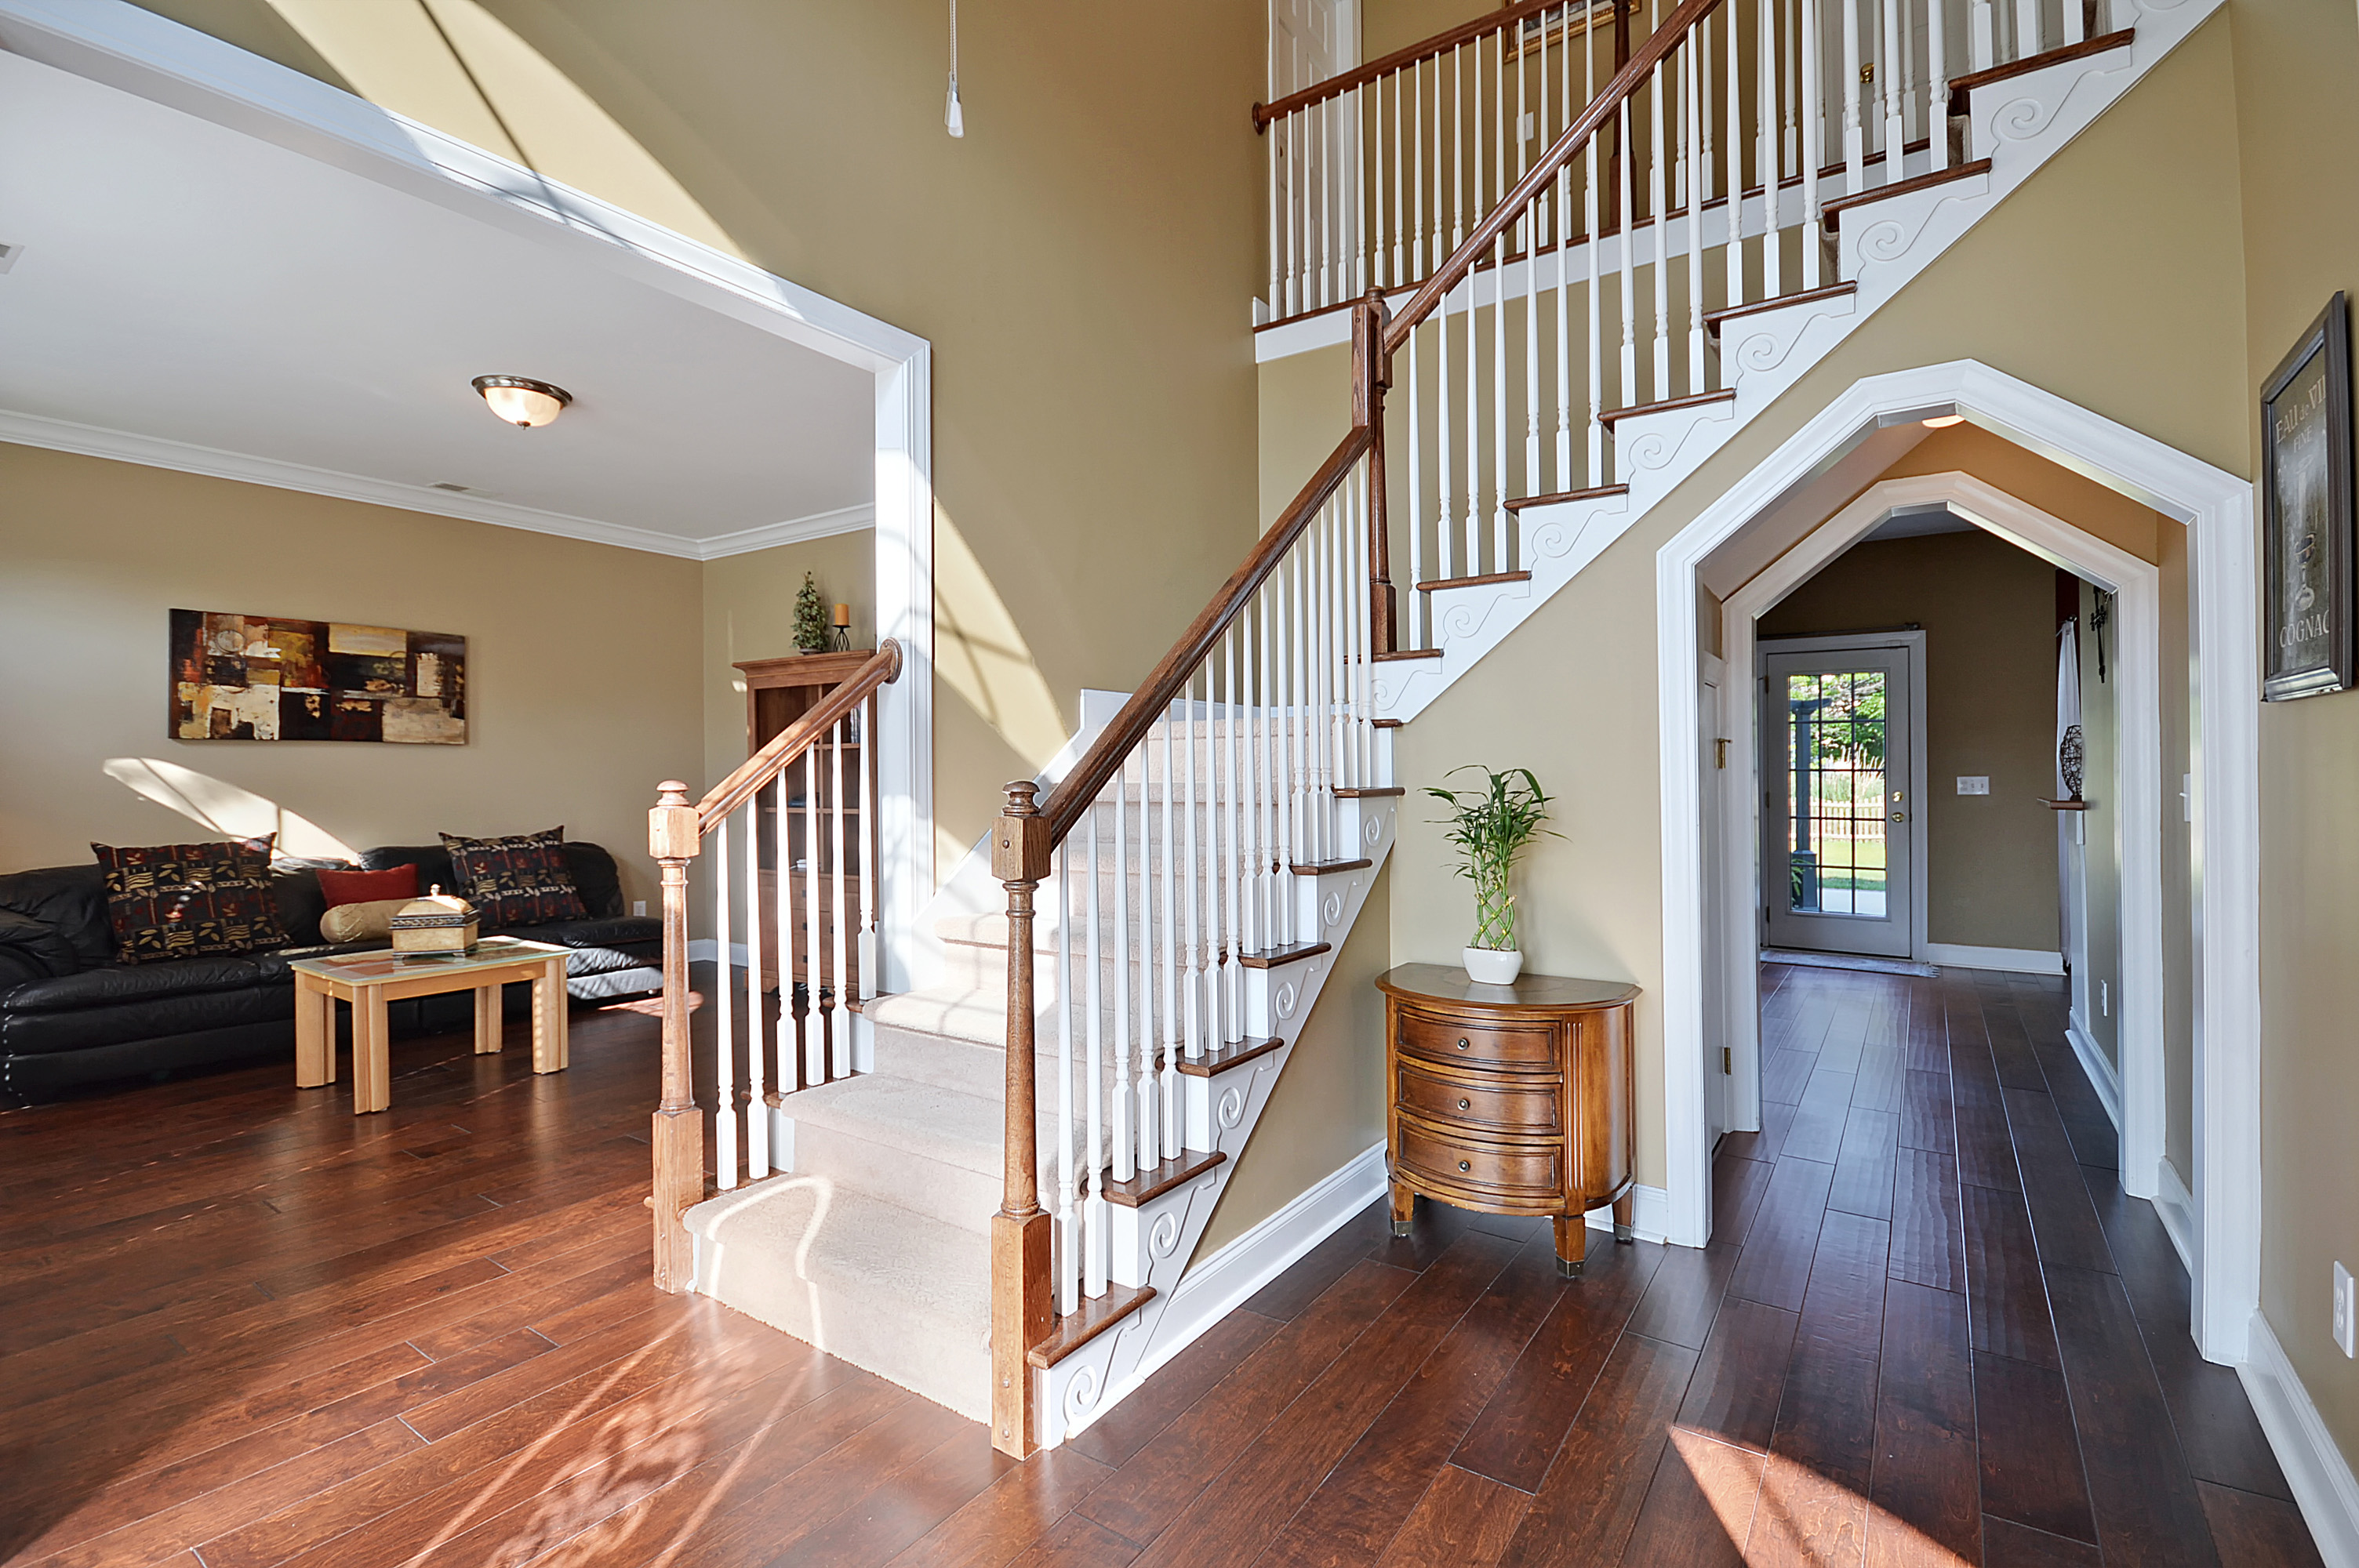 2 Story Foyer Entrance